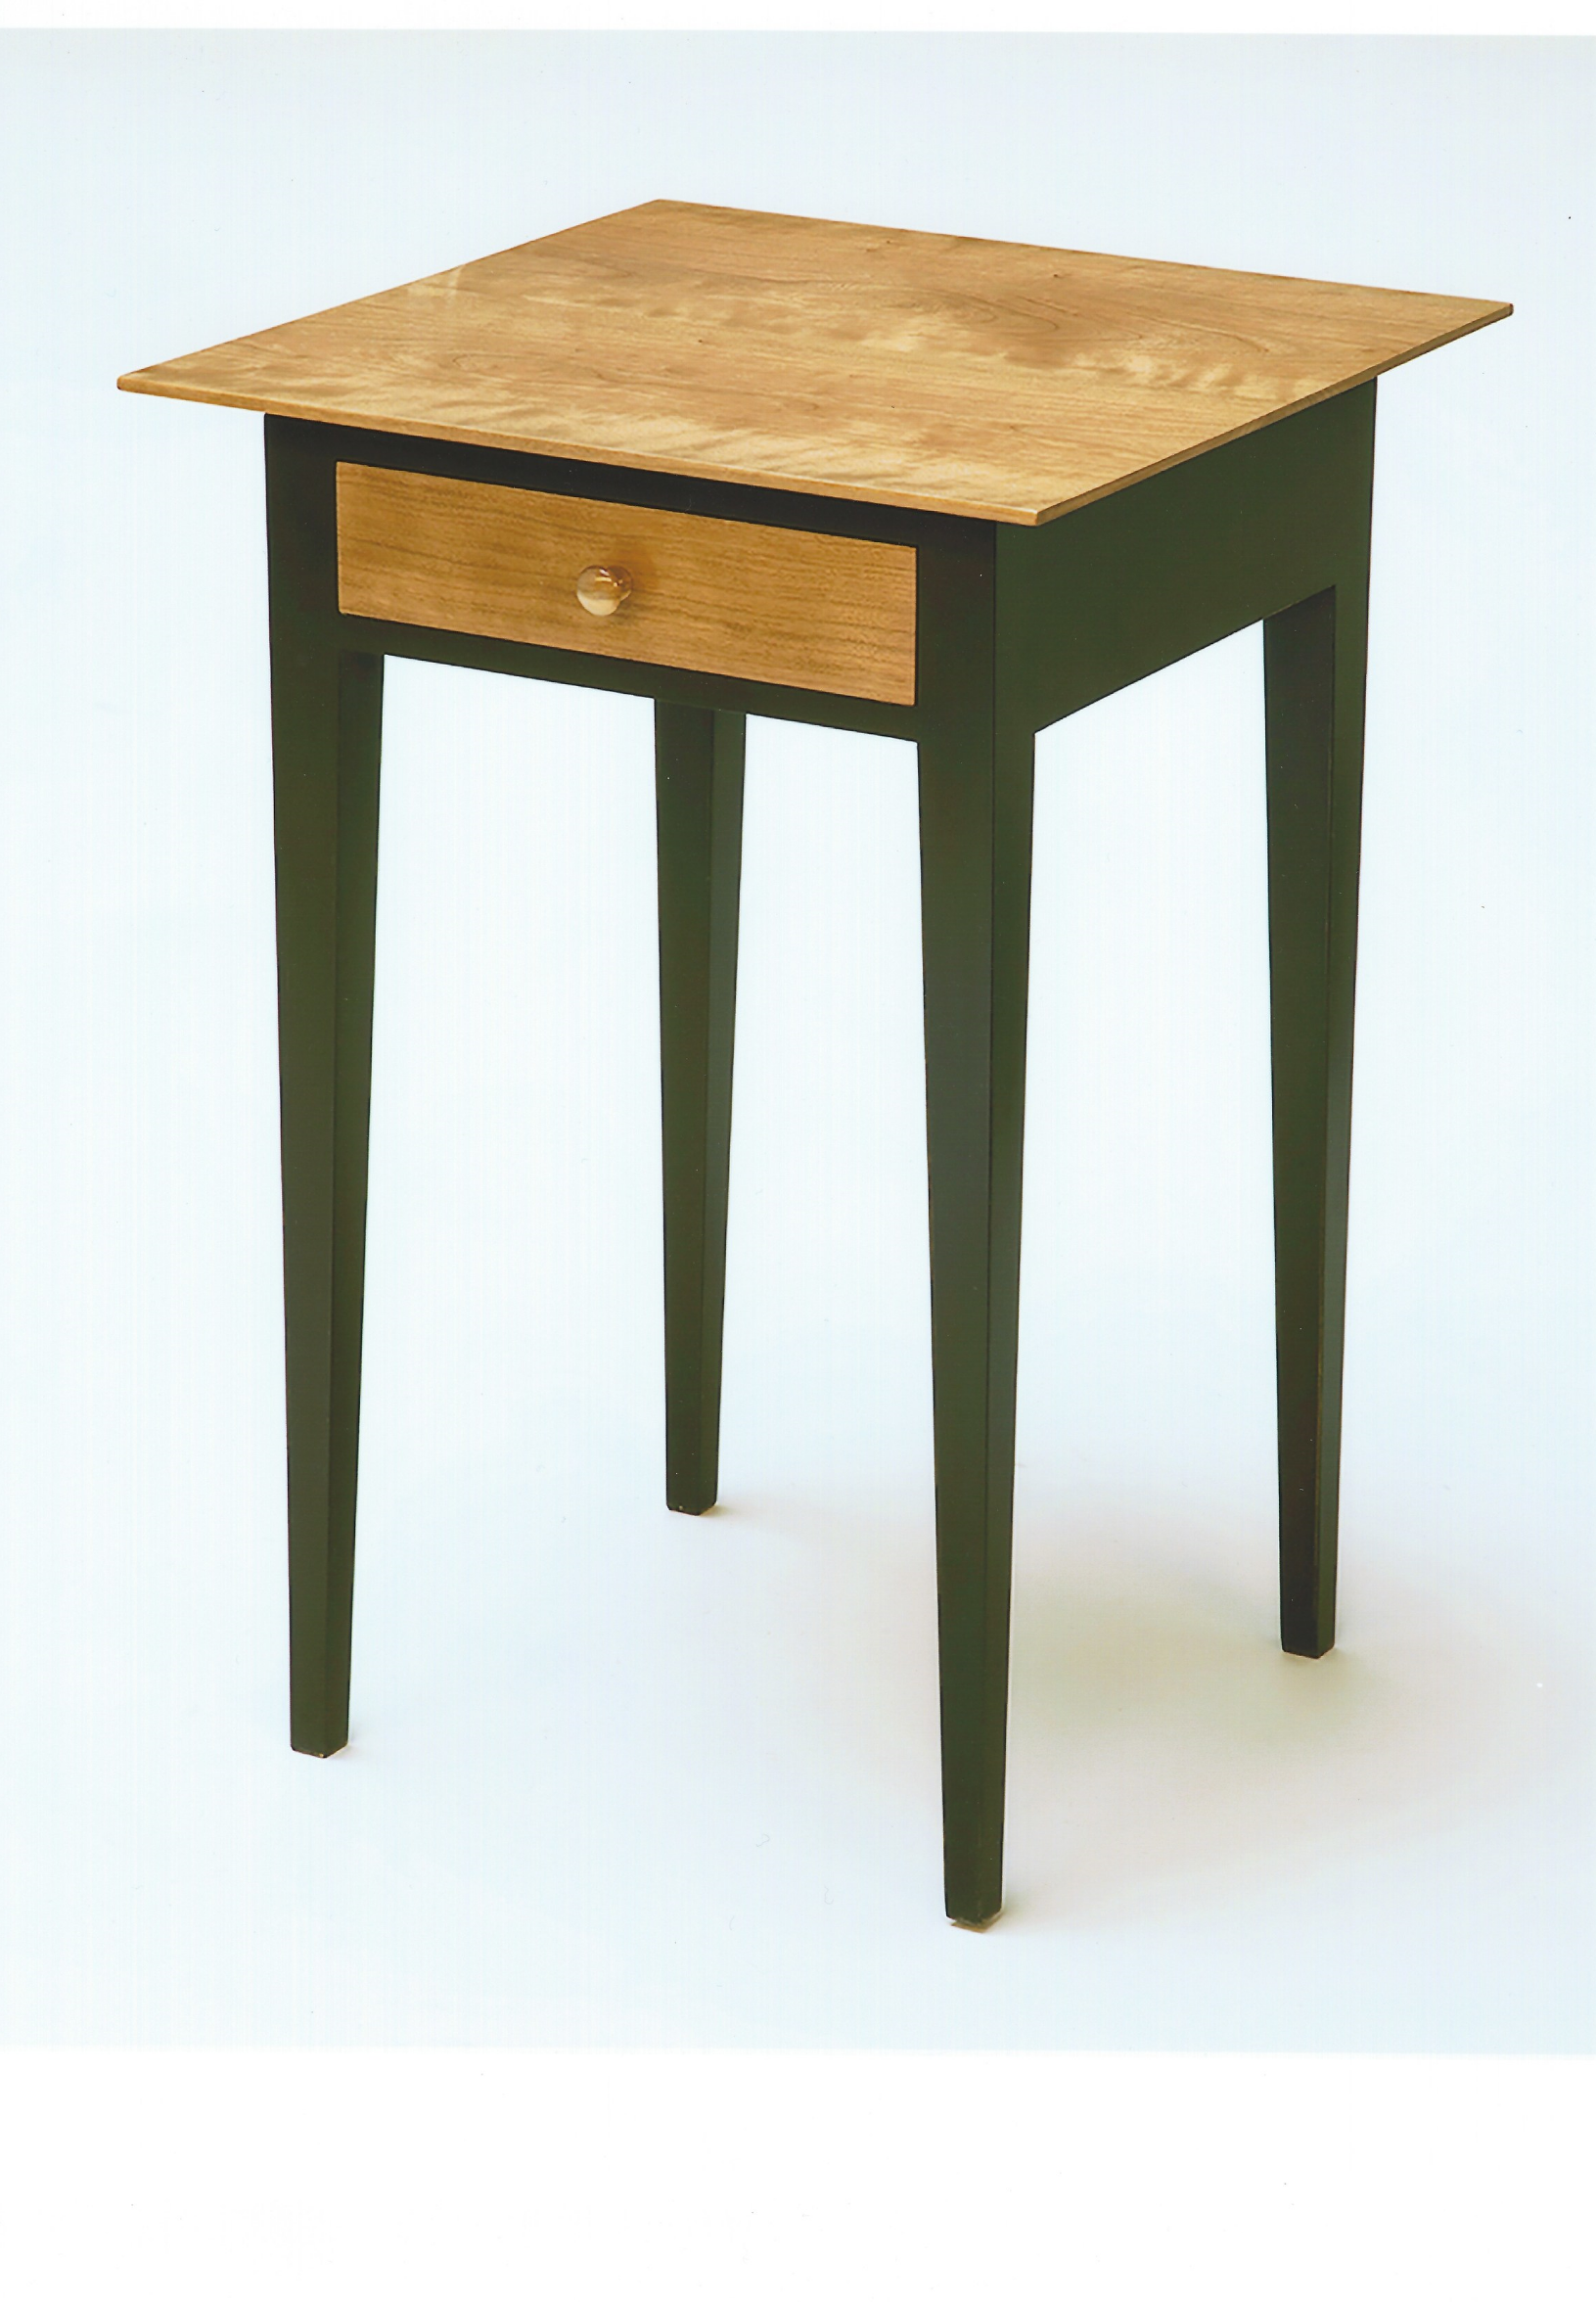 """This is a Shaker style nightstand with clean crisp lines. Cherry is used for the top, drawer front and knob. Poplar is used for legs, rails and drawer parts. Hand cut dovetails connect the front, back and sides of the drawer. The drawer bottom slides in a grove and is held in place by a single screw. Legs, sides and back are mortised and tenoned together. Cherry parts are French polished and poplar parts are finished with forest green milk paint with an oil and urethane top coat. This table is for sale at $450.00.Dimension: 26"""" high x 18"""" wide x 18"""" deep."""